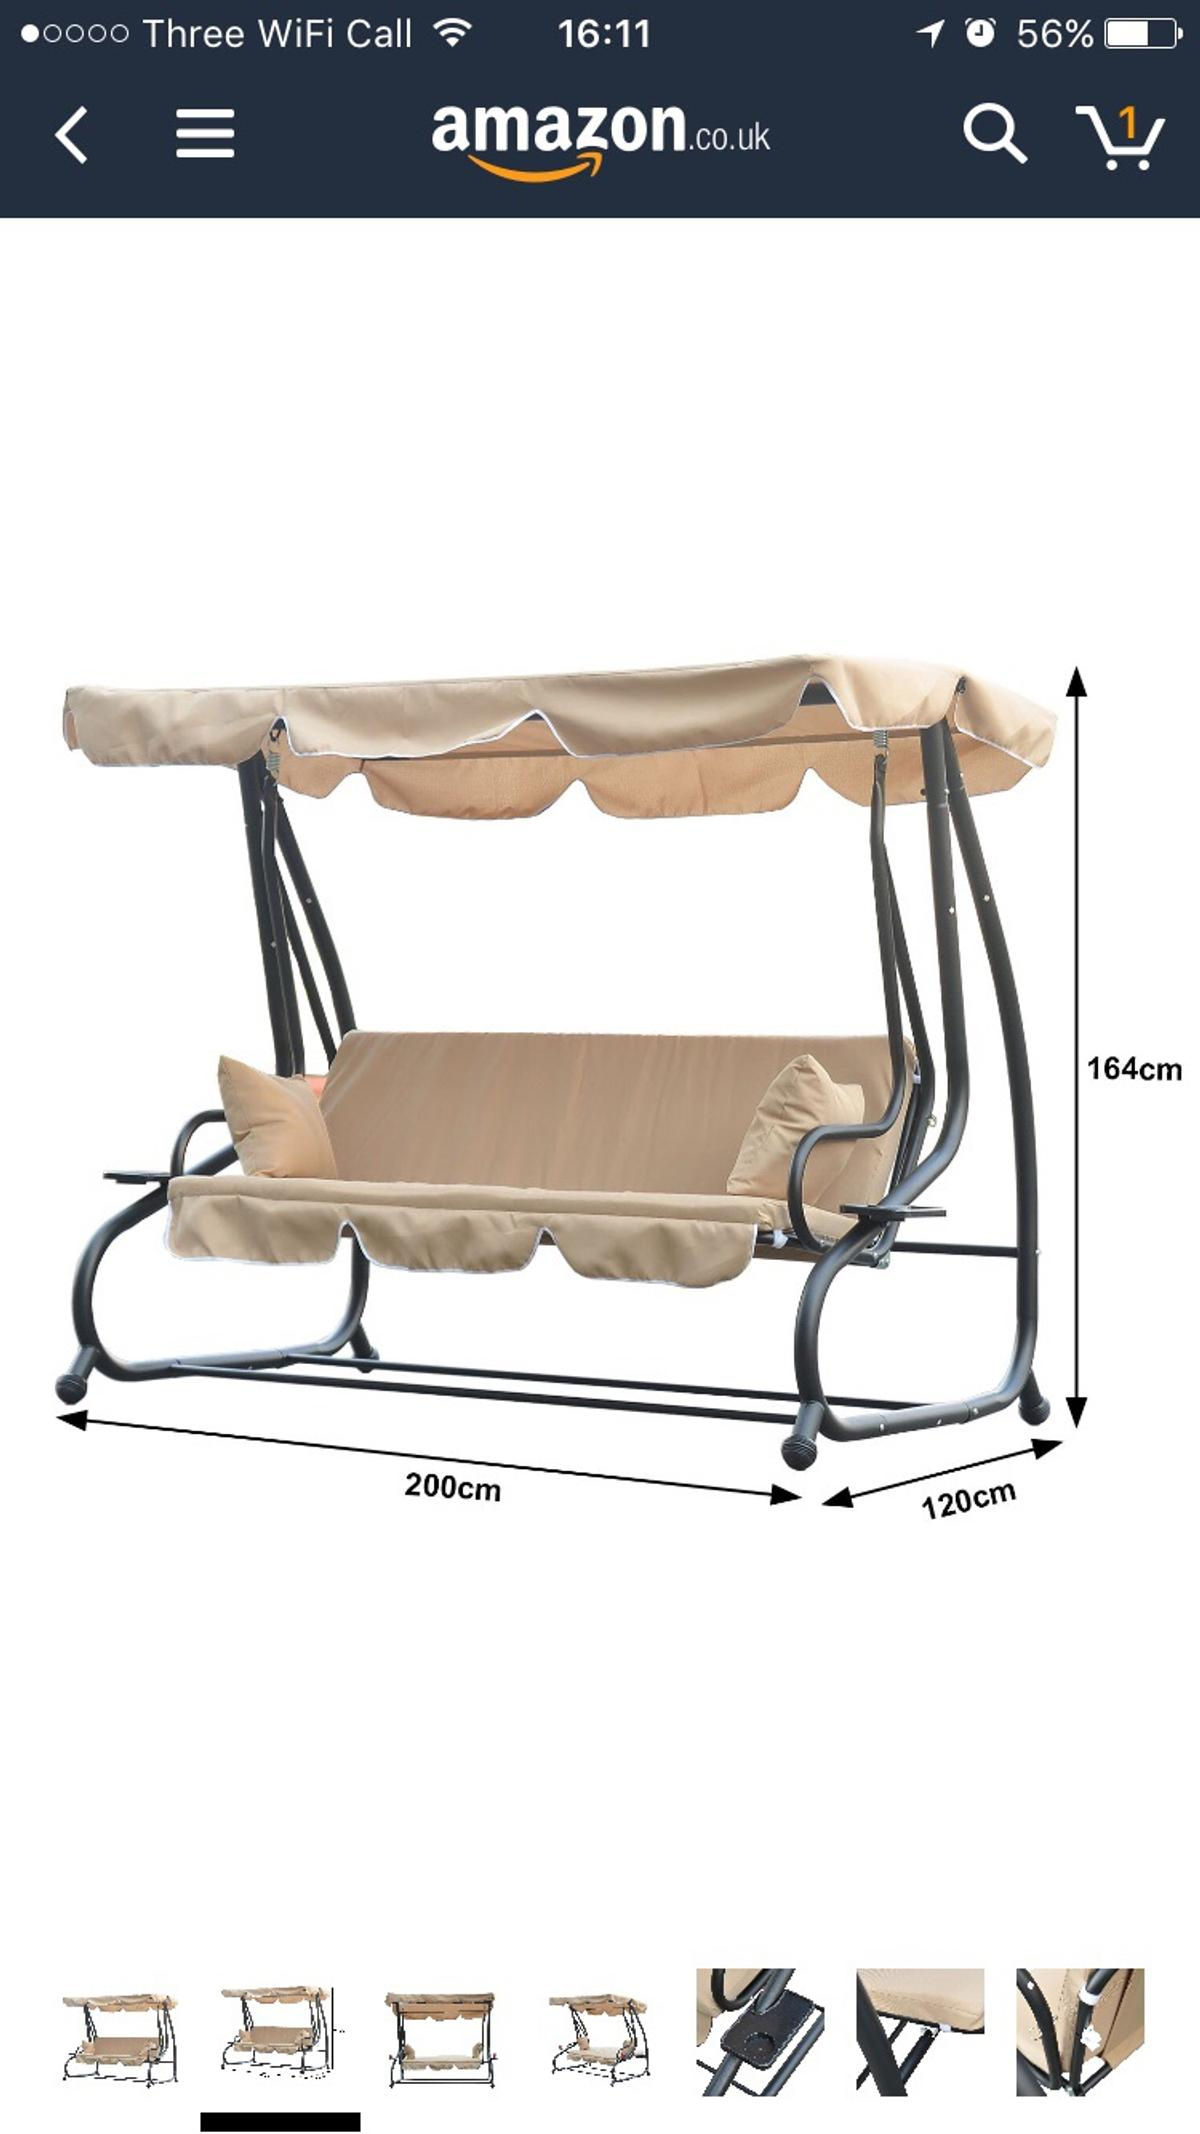 Garden 3 Seater Swing Chair Bed Hammock In Kt10 Claygate For